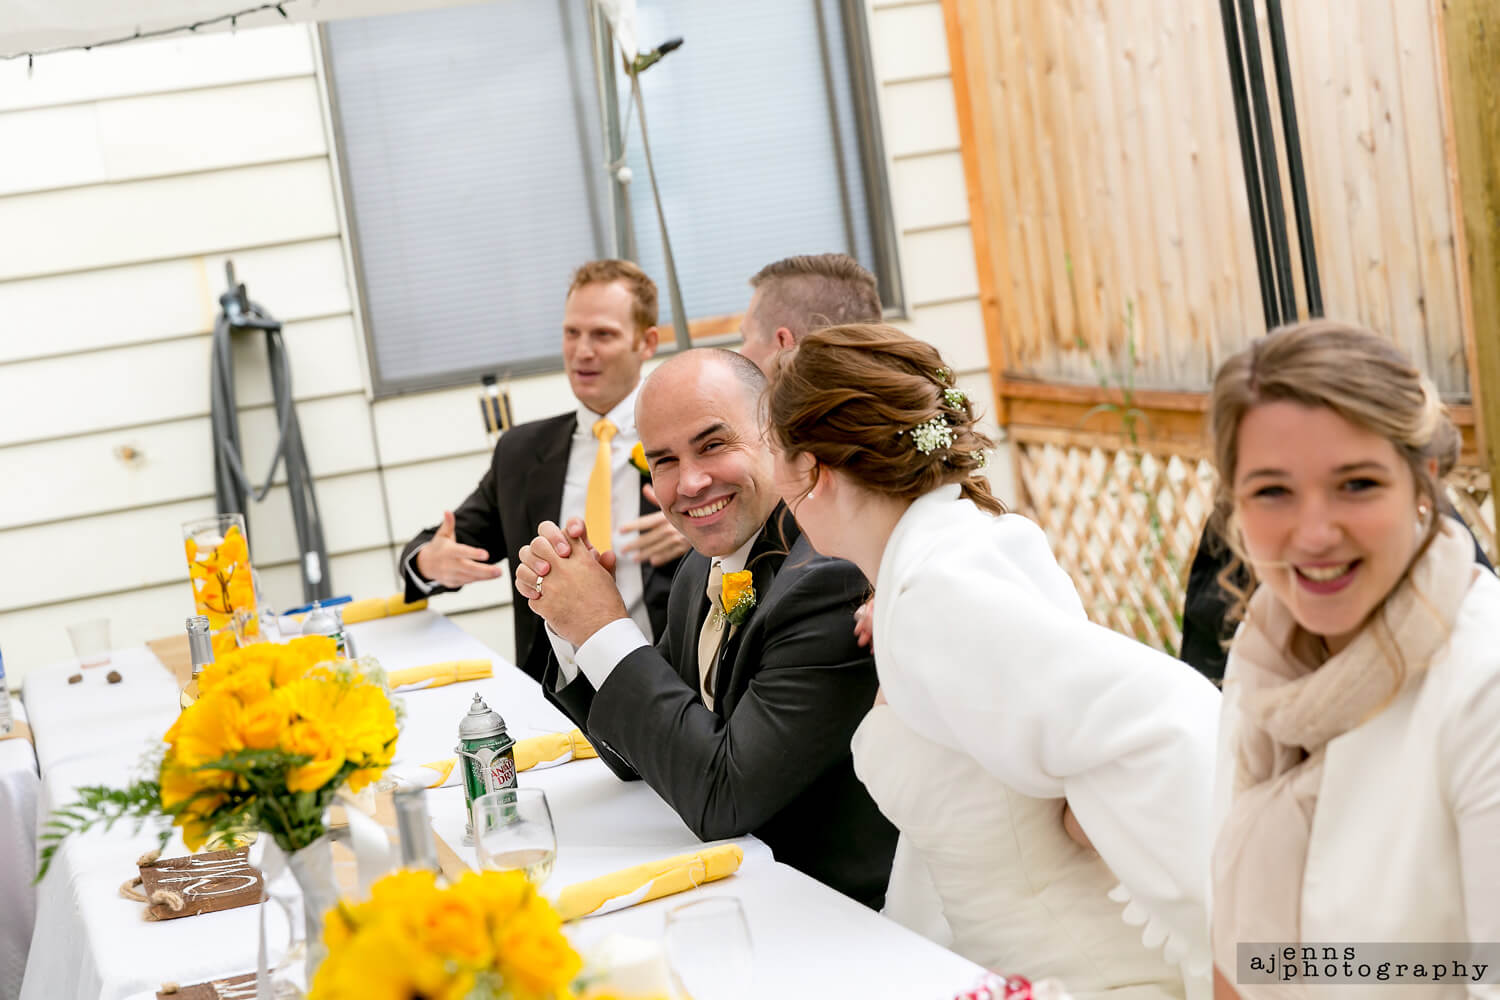 The groom having a laugh from the MC